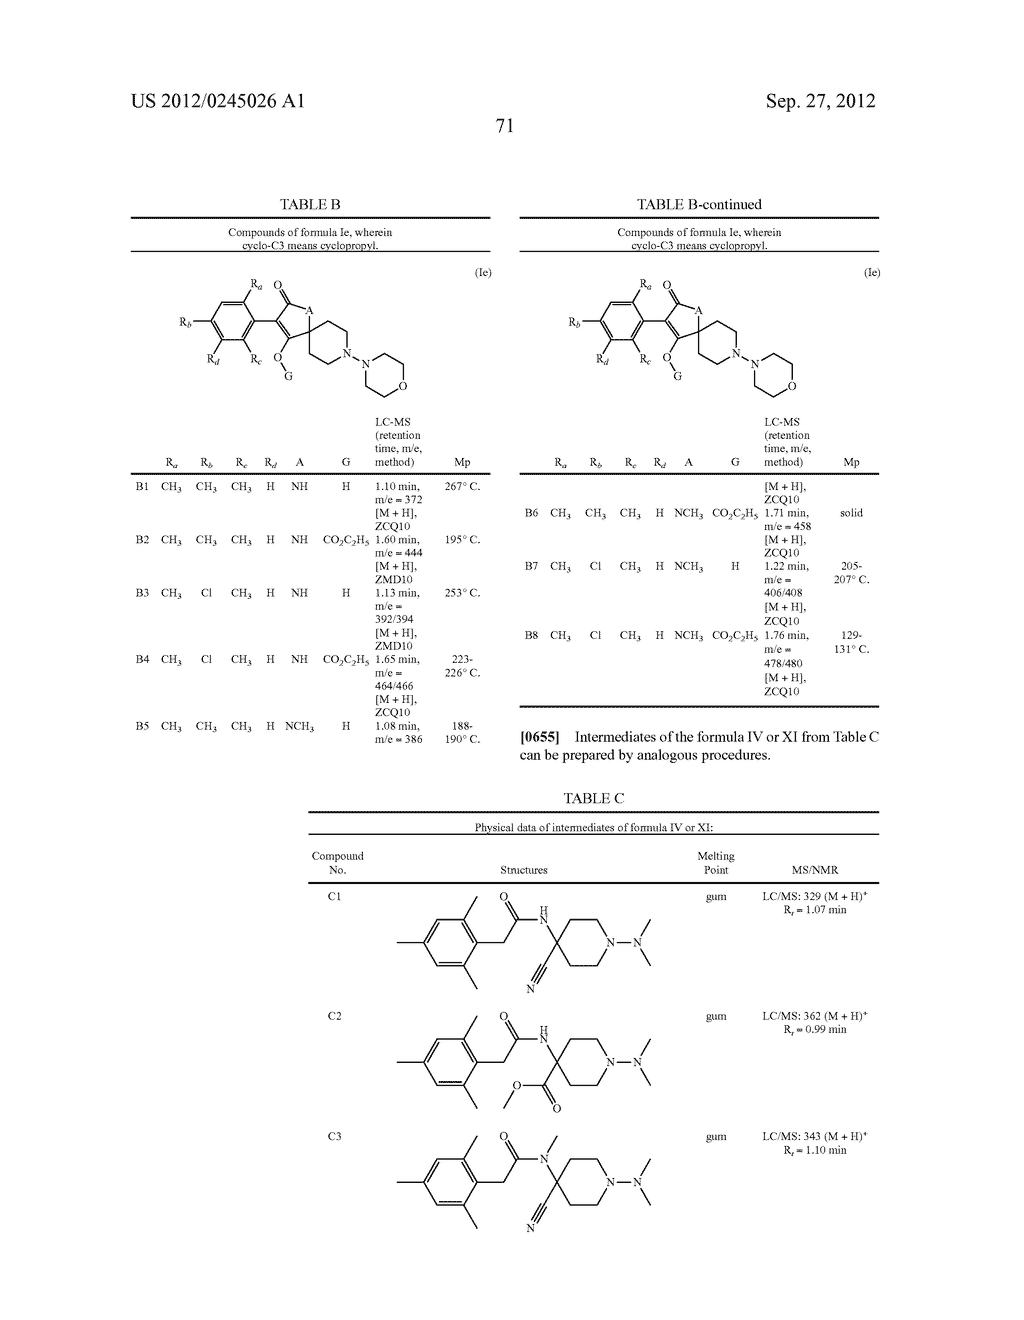 SPIRO FUSED 1-AMINO - PIPERDINE PYRROLIDINE DIONE DERIVATIVES WITH     PESTICIDAL ACTIVITY - diagram, schematic, and image 72